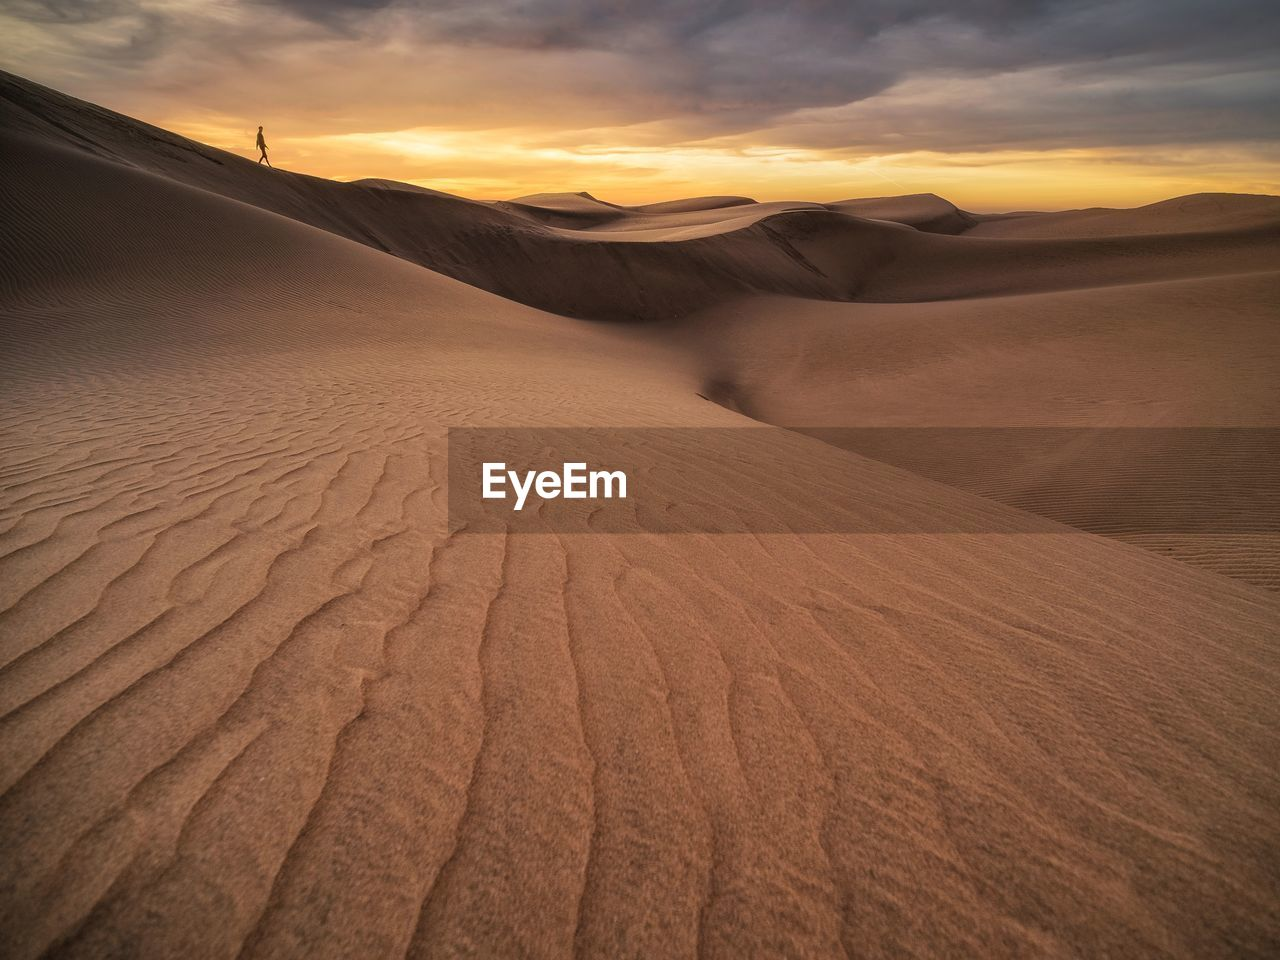 desert, scenics - nature, sand dune, landscape, sand, arid climate, climate, land, tranquility, sky, tranquil scene, environment, beauty in nature, sunset, non-urban scene, remote, nature, no people, cloud - sky, extreme terrain, outdoors, atmospheric